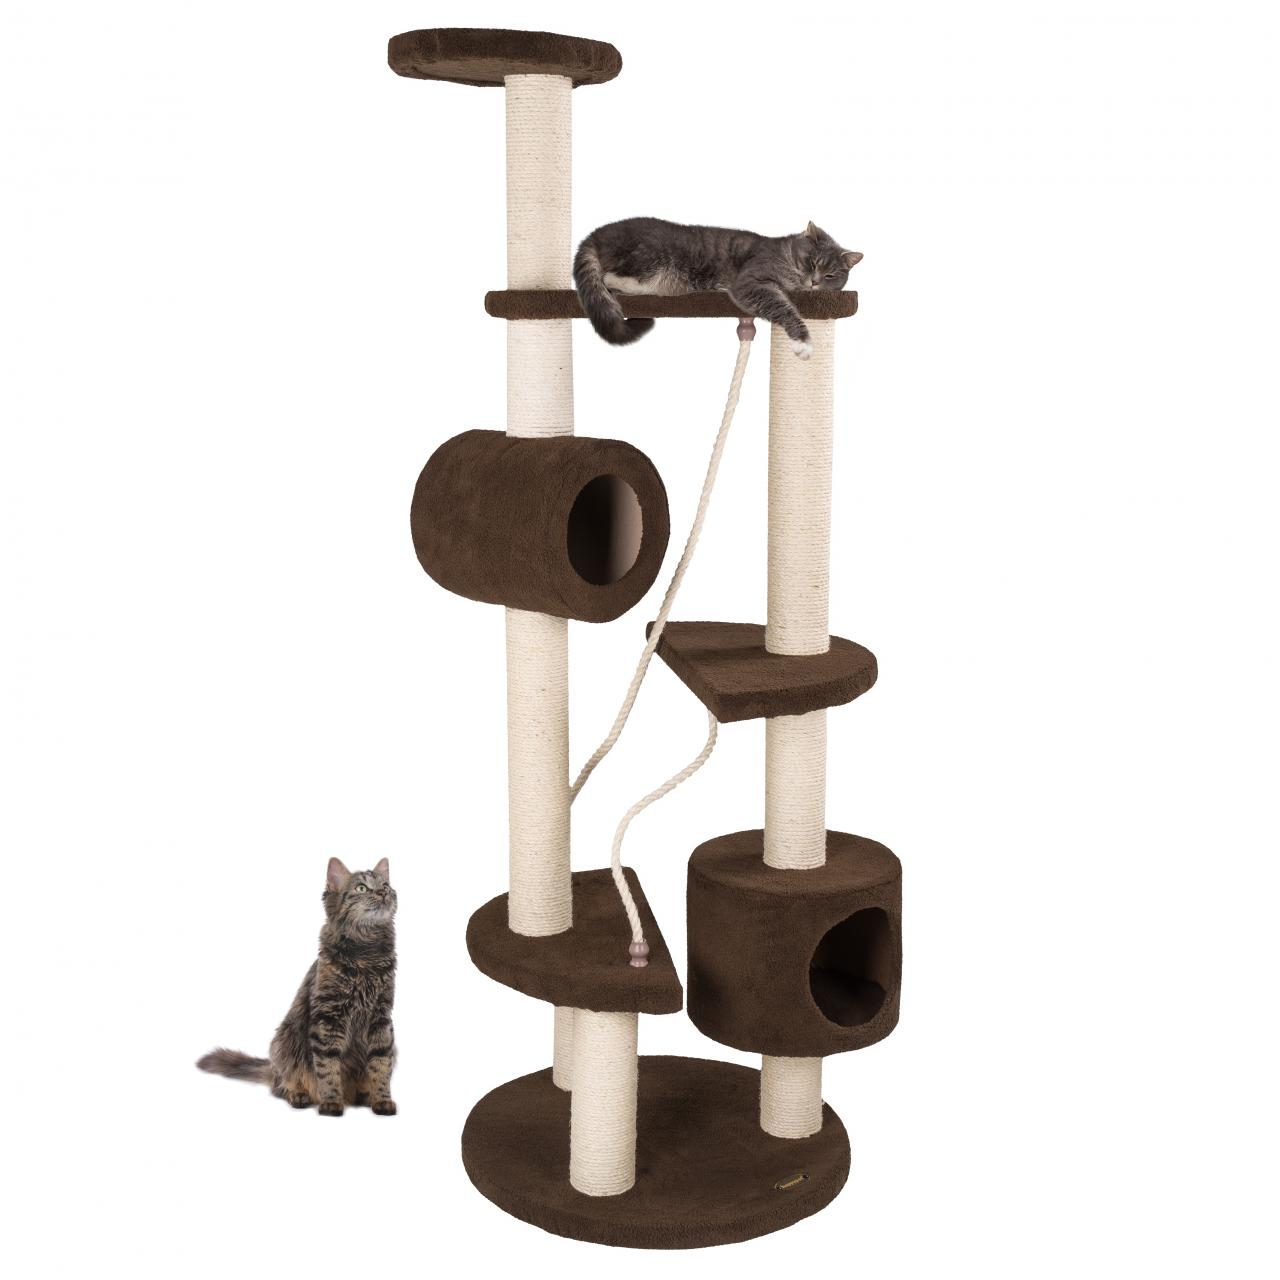 arbre chat griffoir grattoir 163cm cat020 couleurs diverses ebay. Black Bedroom Furniture Sets. Home Design Ideas